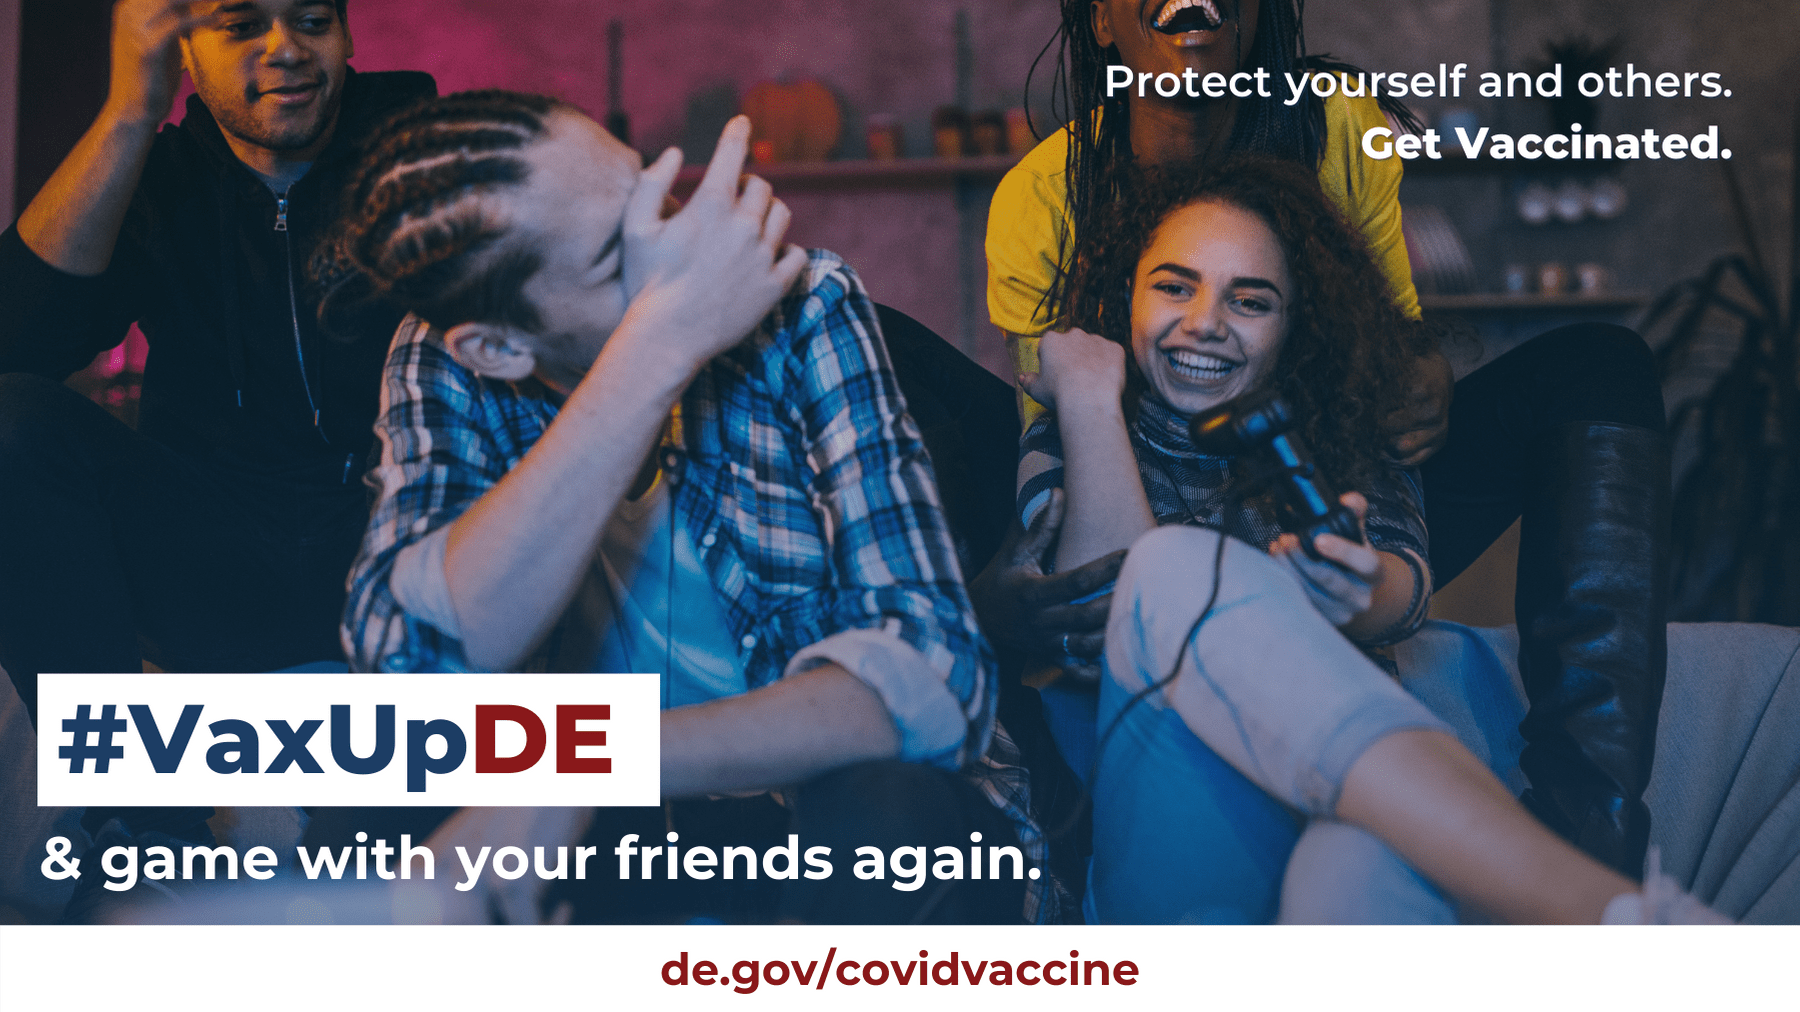 VaxUpDE. Protect yourself and others. Get Vaccinated. Teens laughing together while in a lounge with purple ambient light.